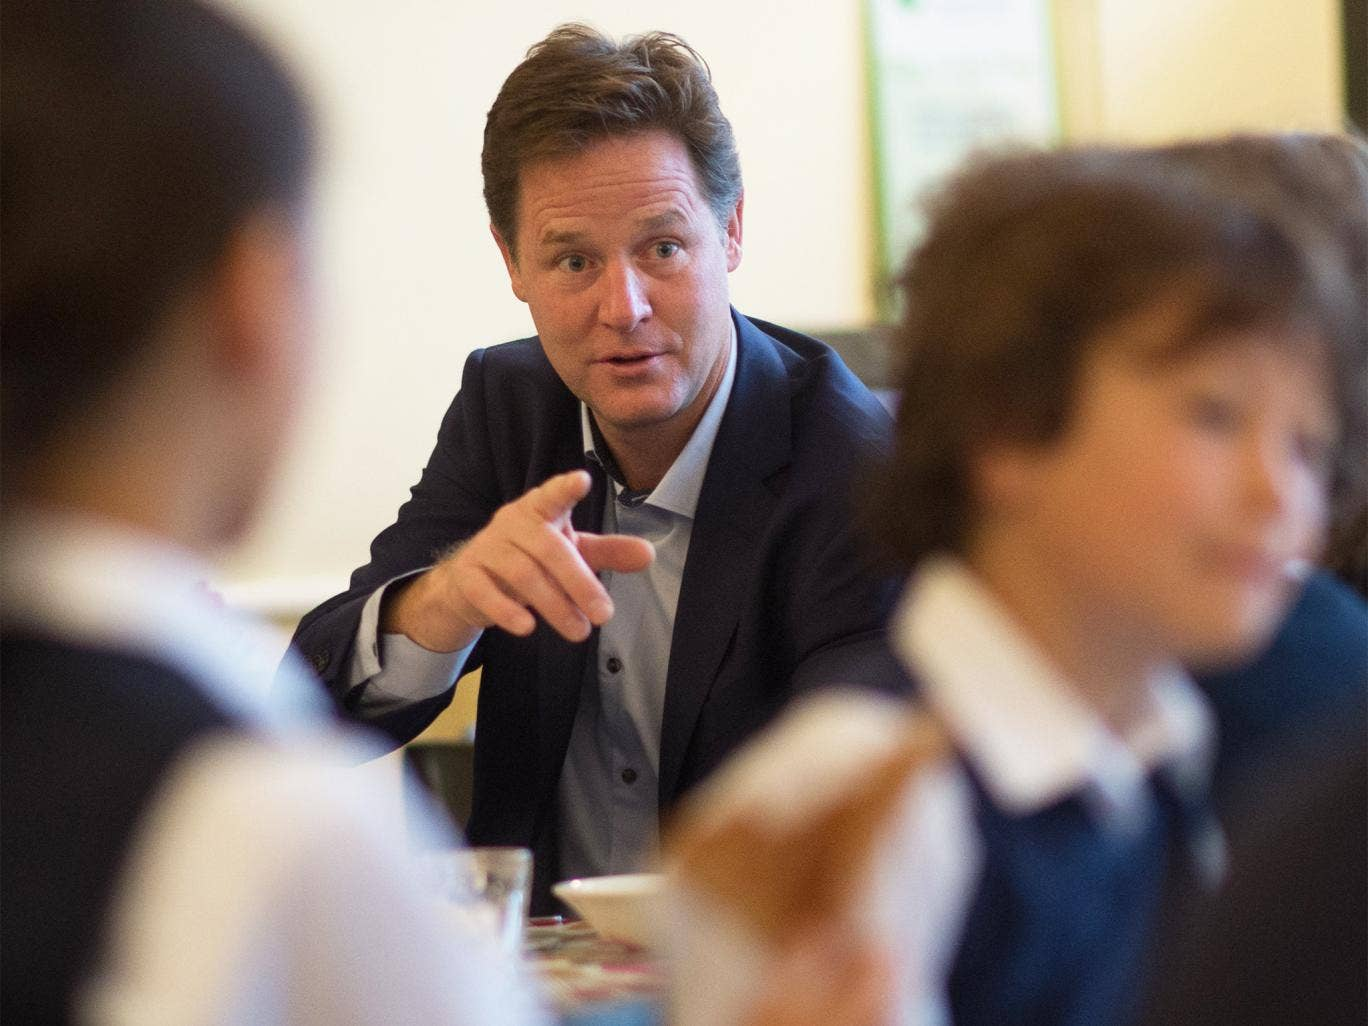 Deputy Prime Minister Nick Clegg meets pupils at Clapham Manor Primary School in south west London, on Tuesday